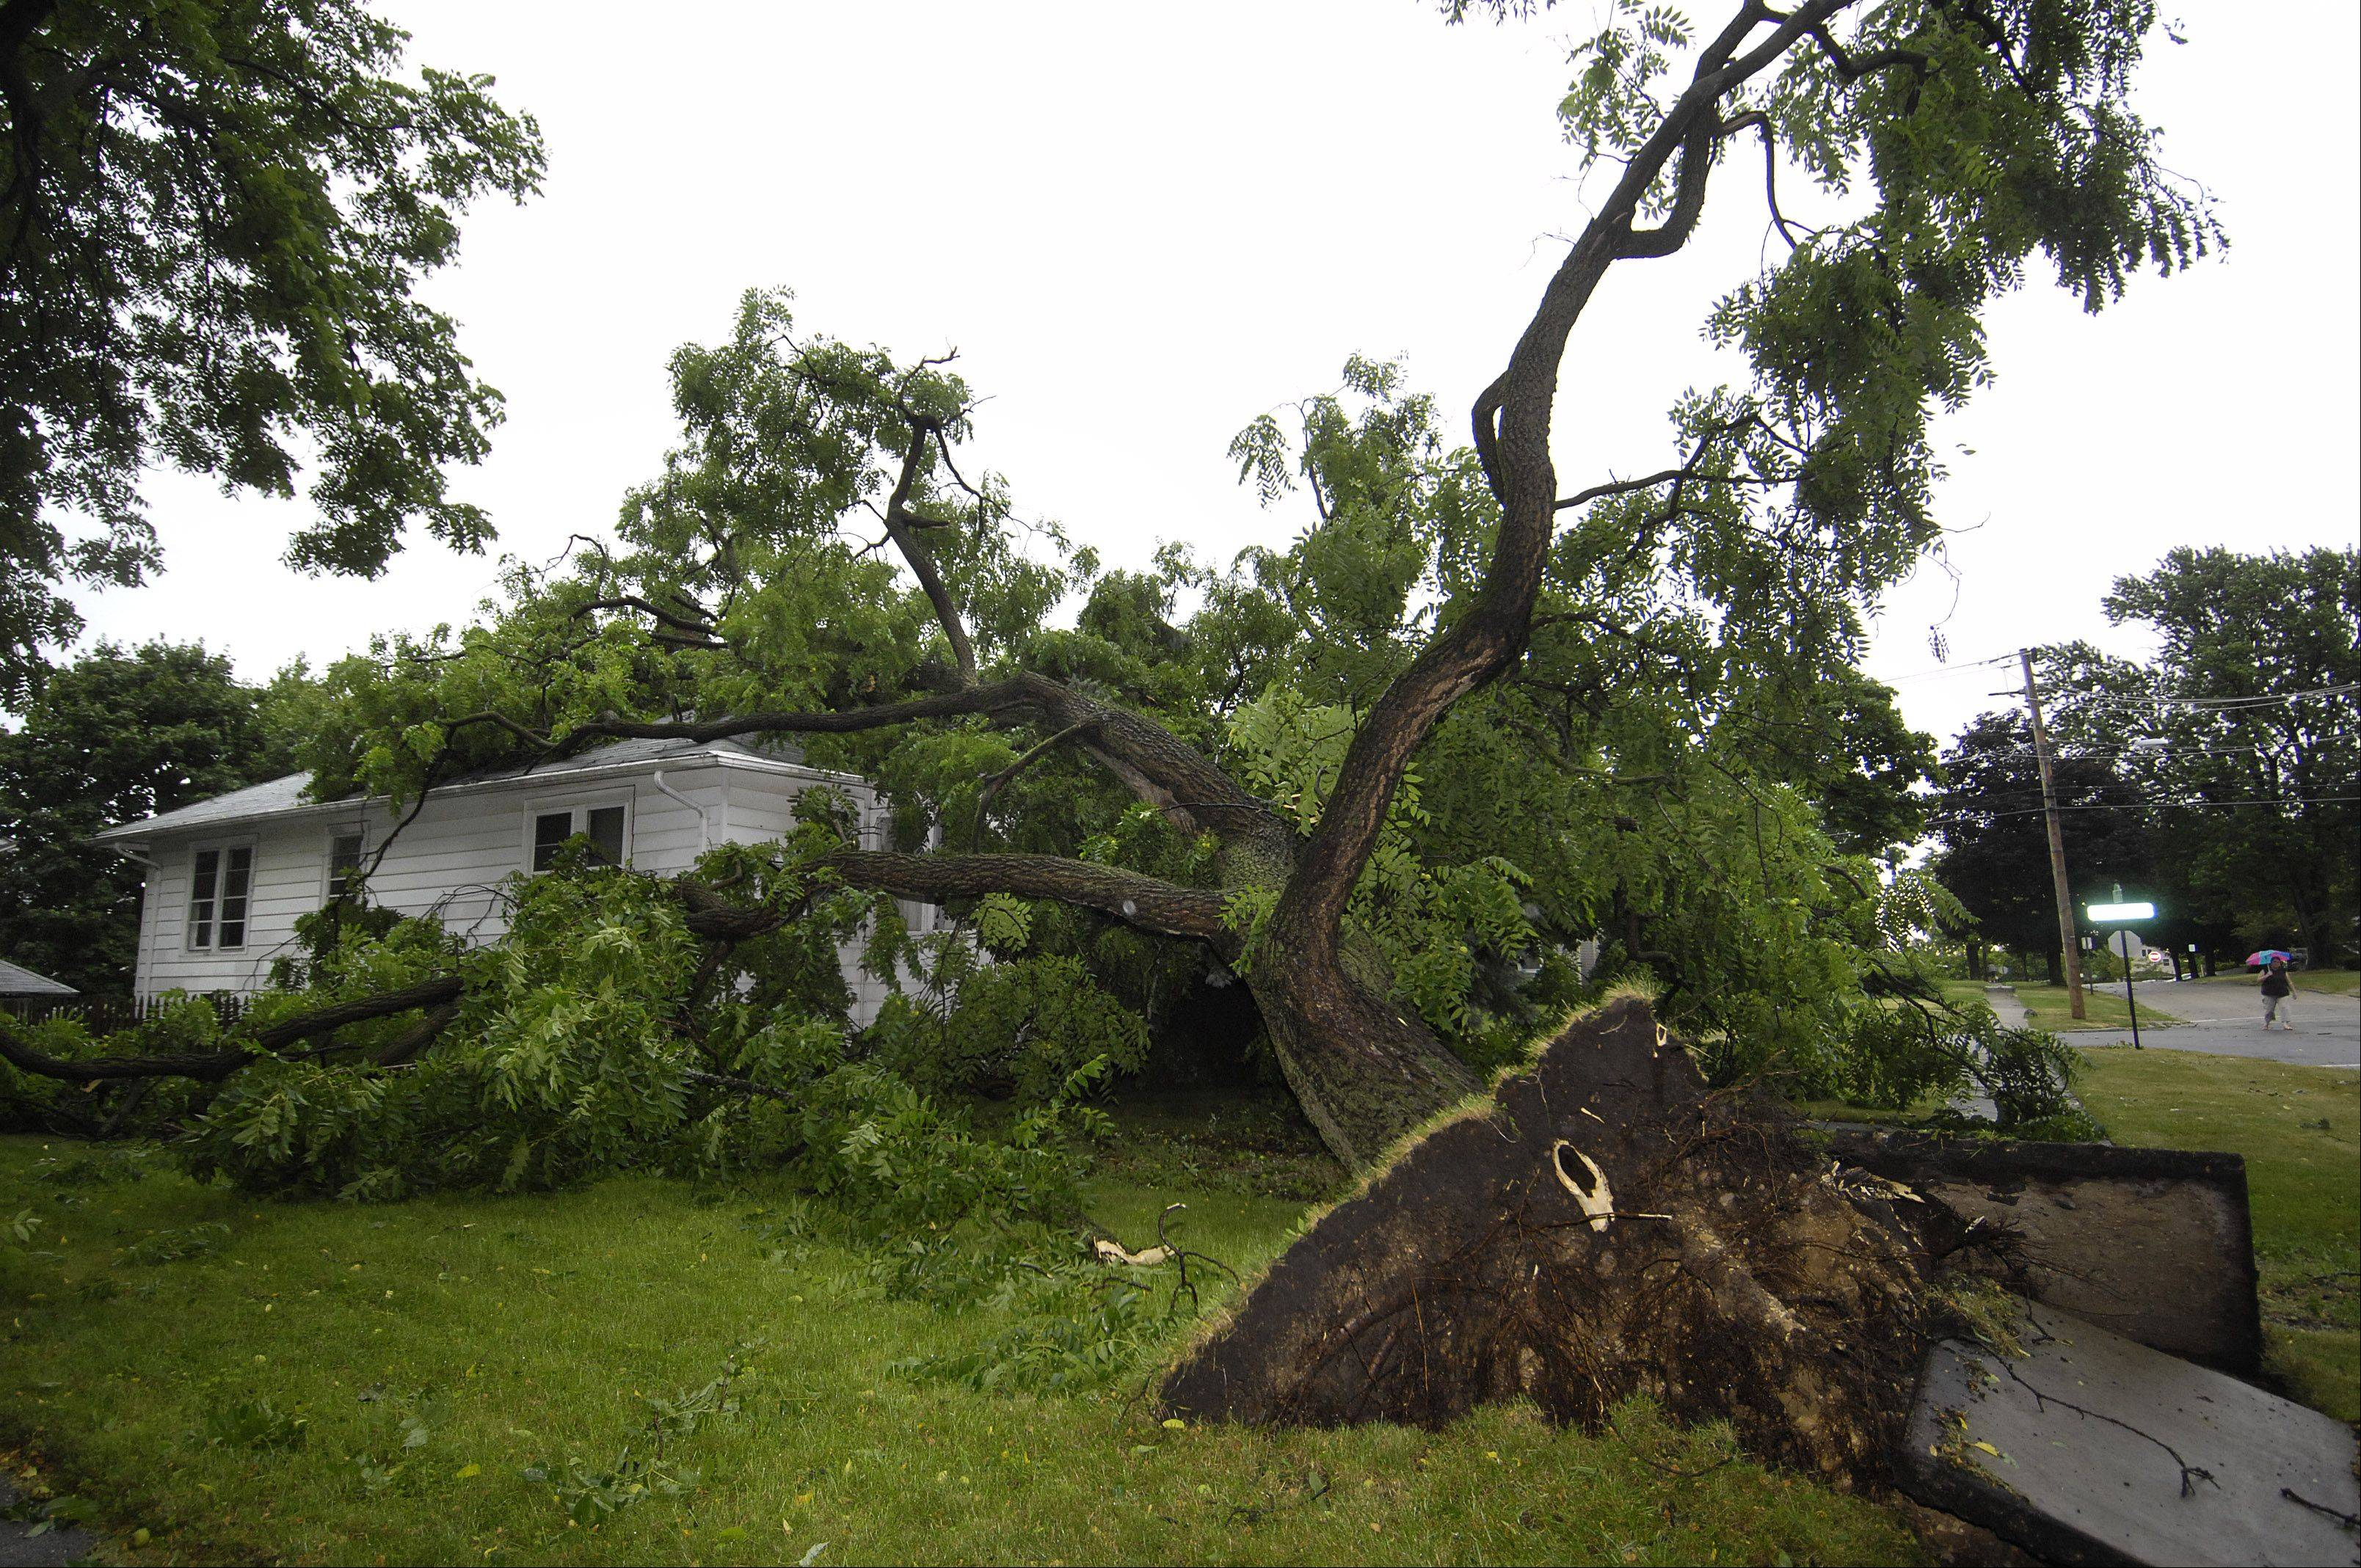 A large tree destroyed the bedroom of a home on Ellsworth Street in Crystal Lake early Monday. The homeowner had just left the house.